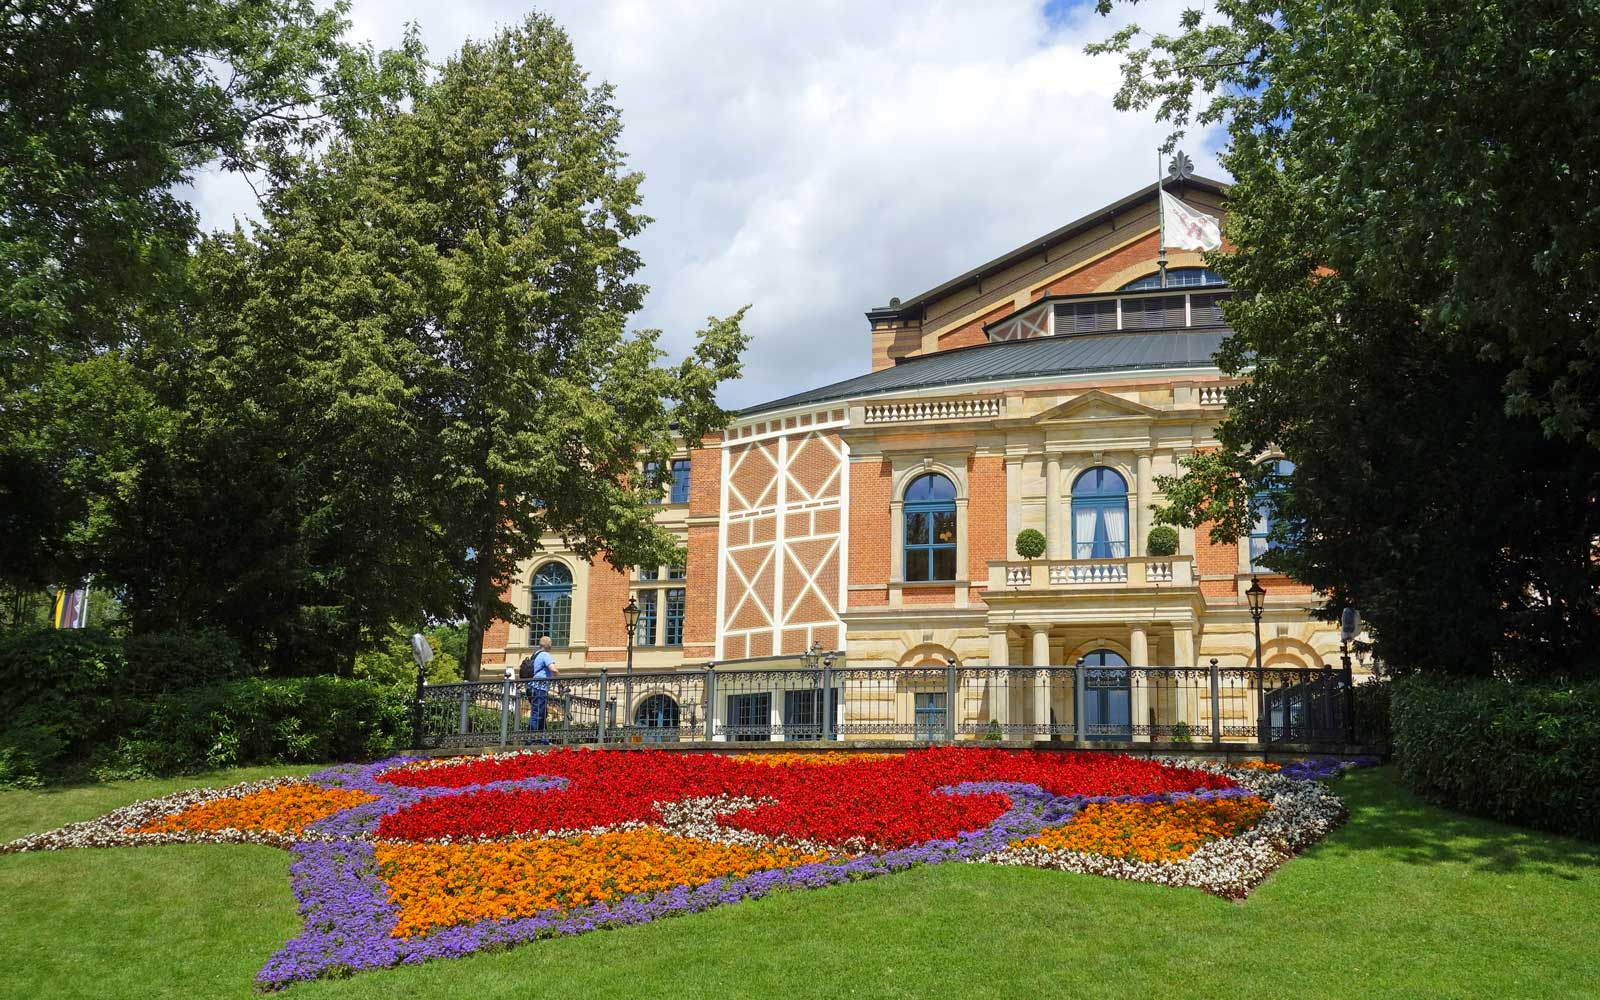 Opera House in Bayreuth, Germany